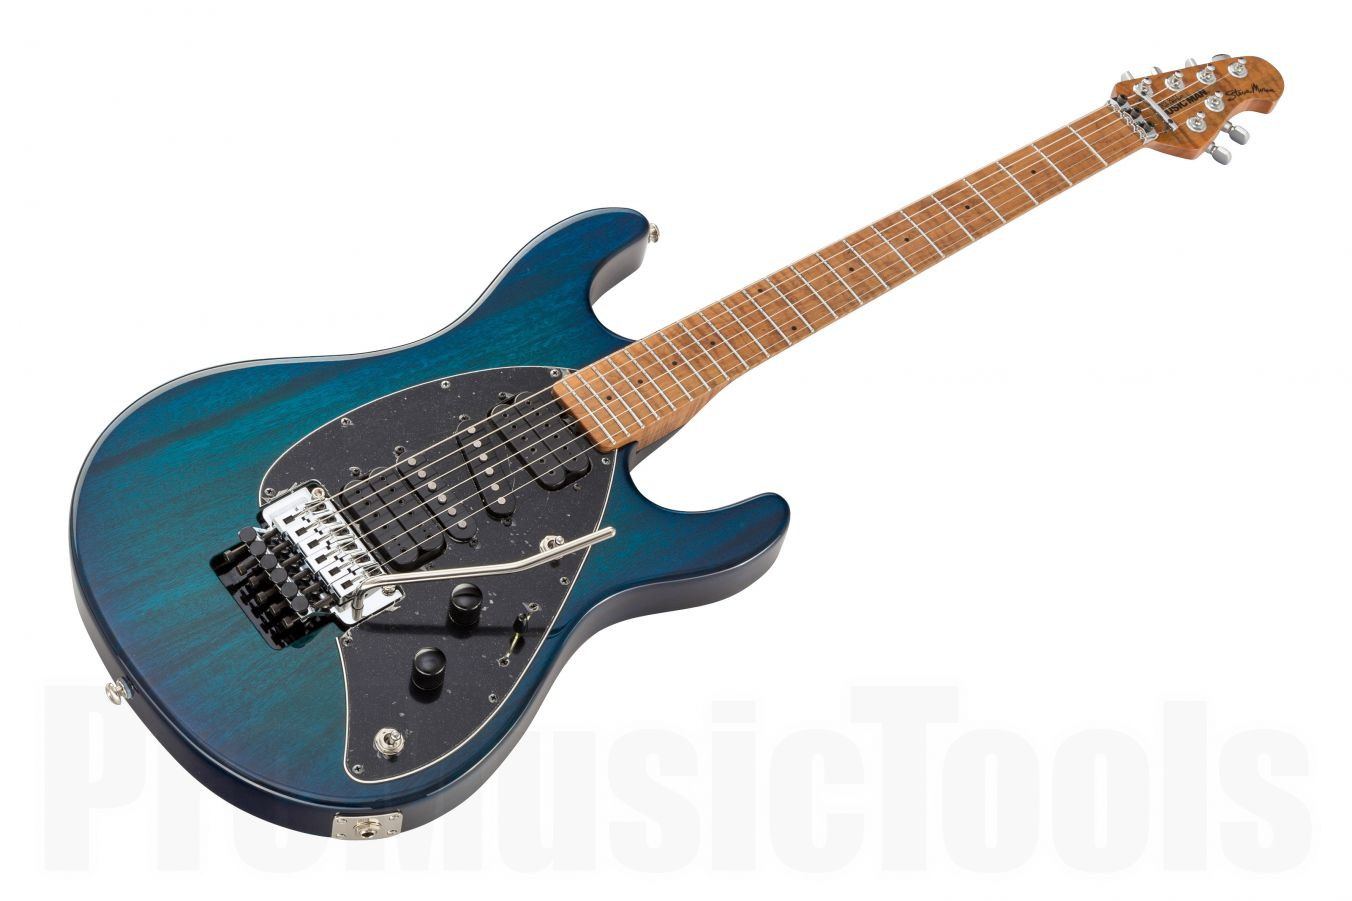 Music Man USA Steve Morse FR NB - PDN Neptune Blue Roasted Neck Limited Edition MN